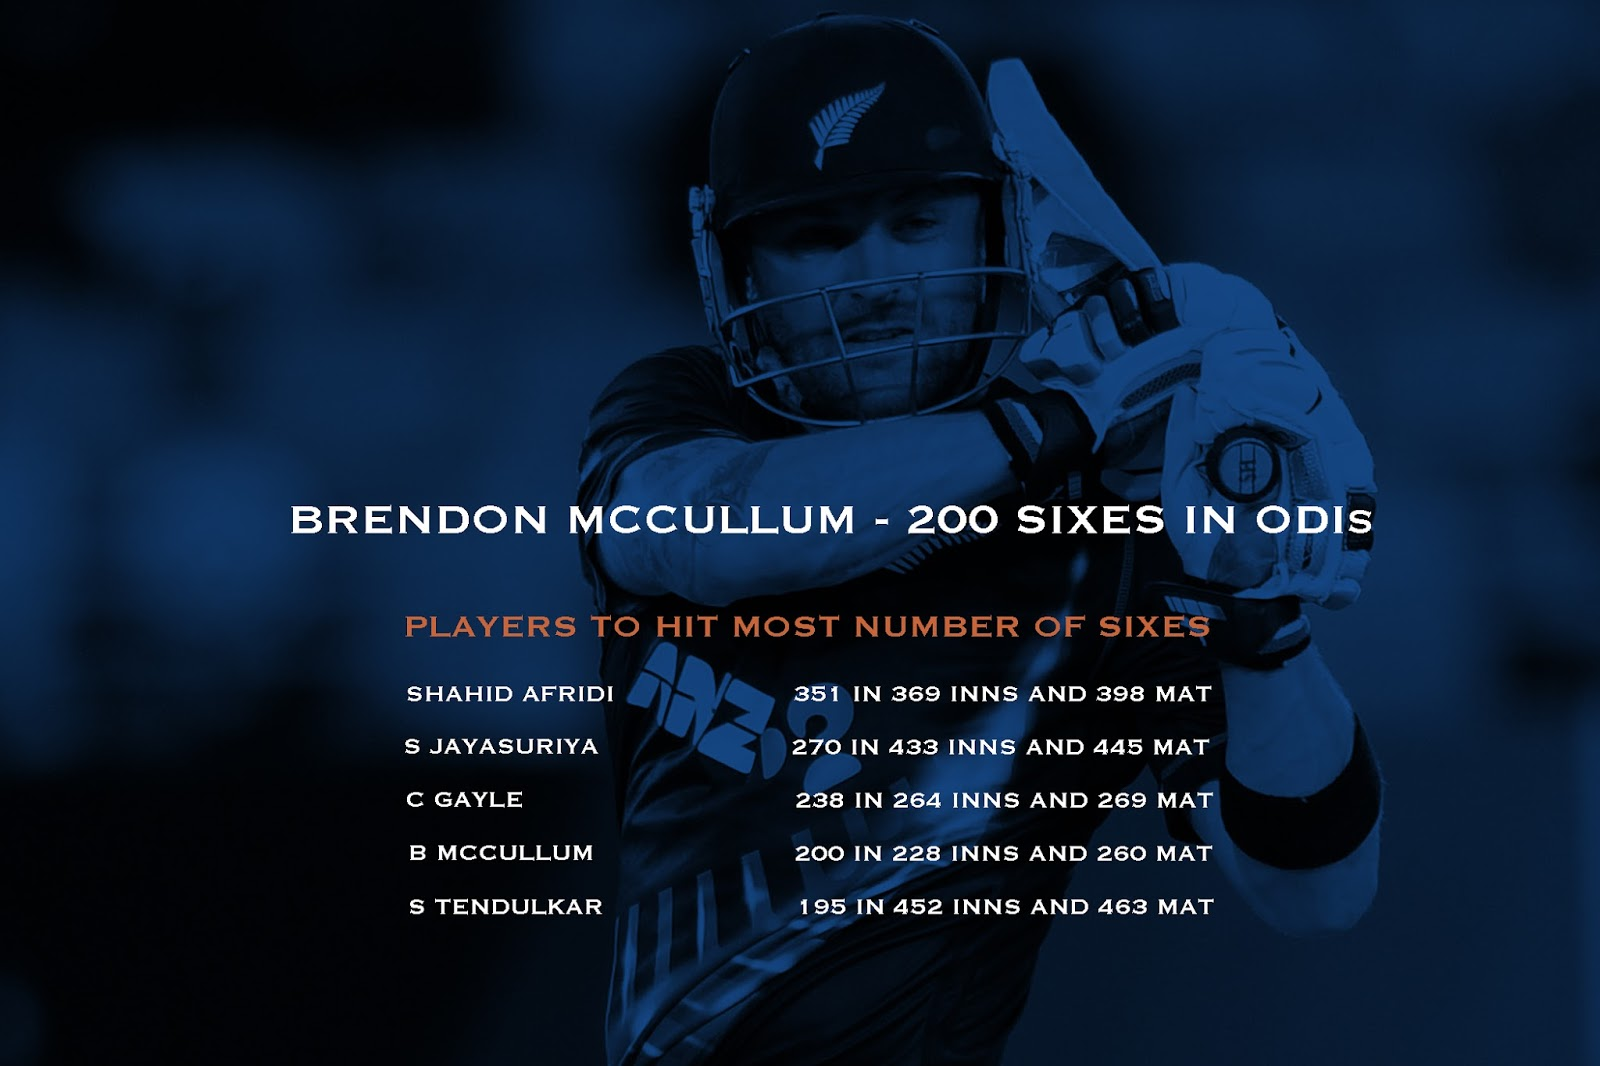 Brendon McCullum hits 200 ODI sixes